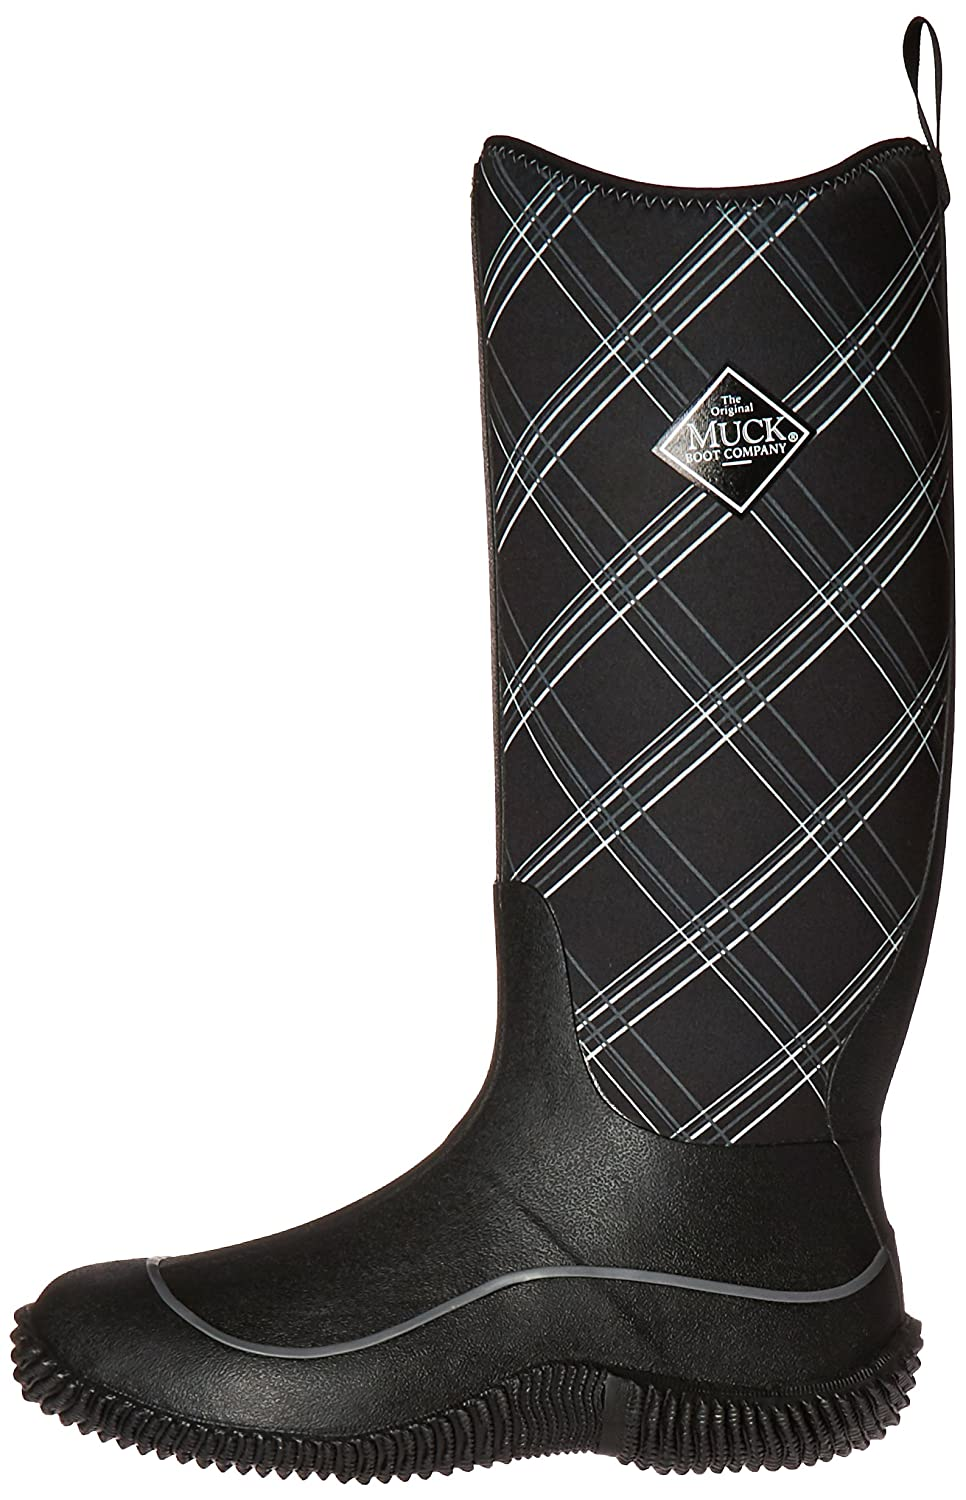 MuckBoots Women's Hale Plaid Boot Plaid B01IQ6Z90U 5 M US|Black/Gray Plaid Boot 5ceb0a